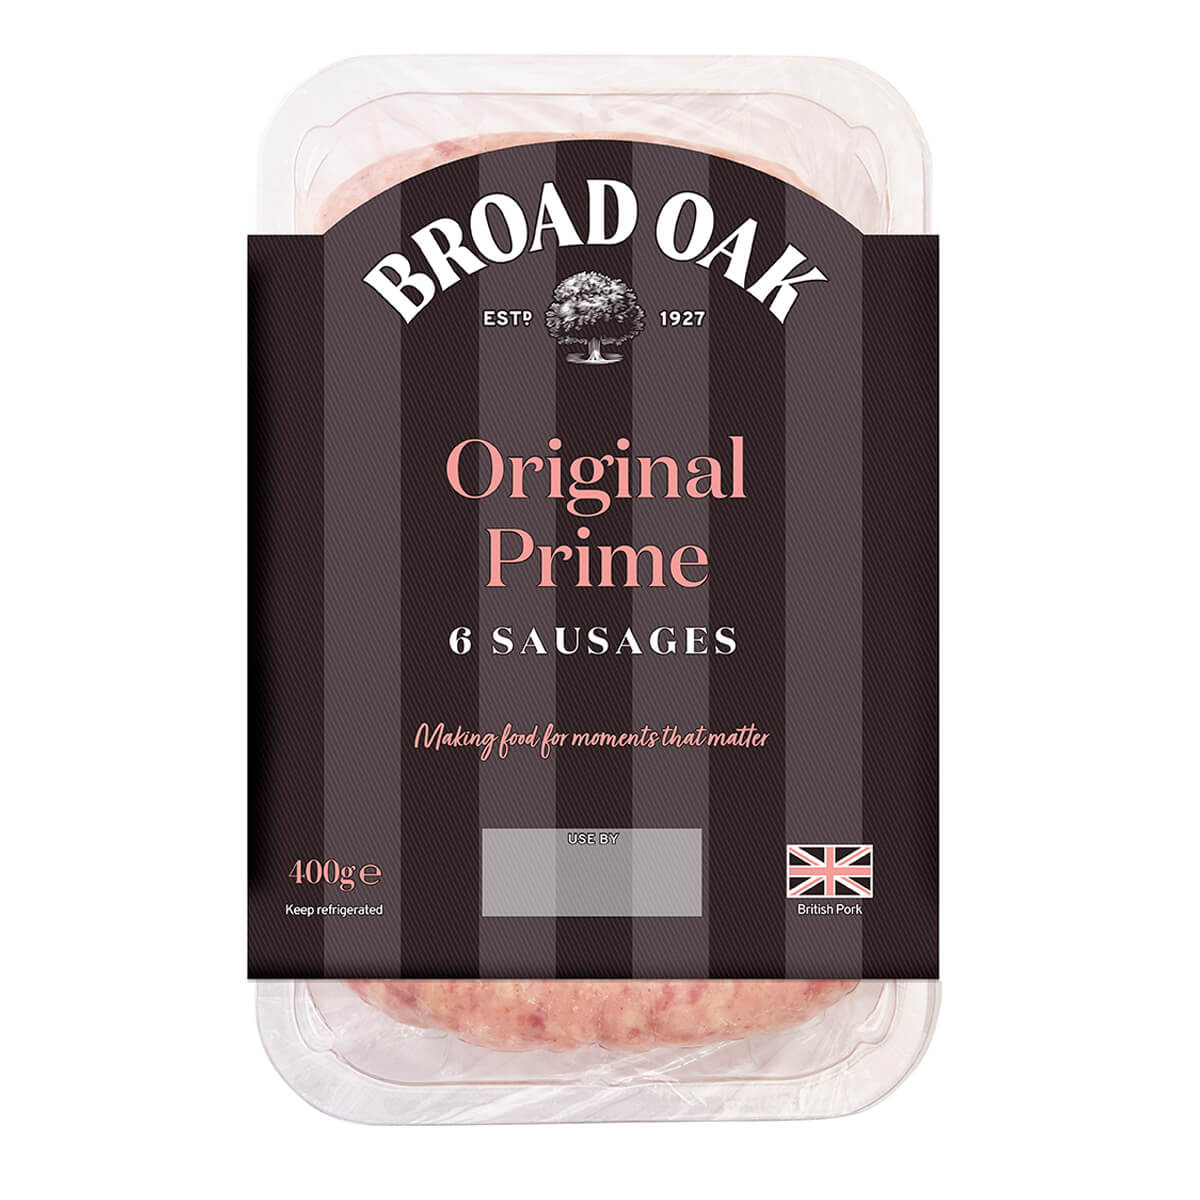 Original Prime Sausages (400g)